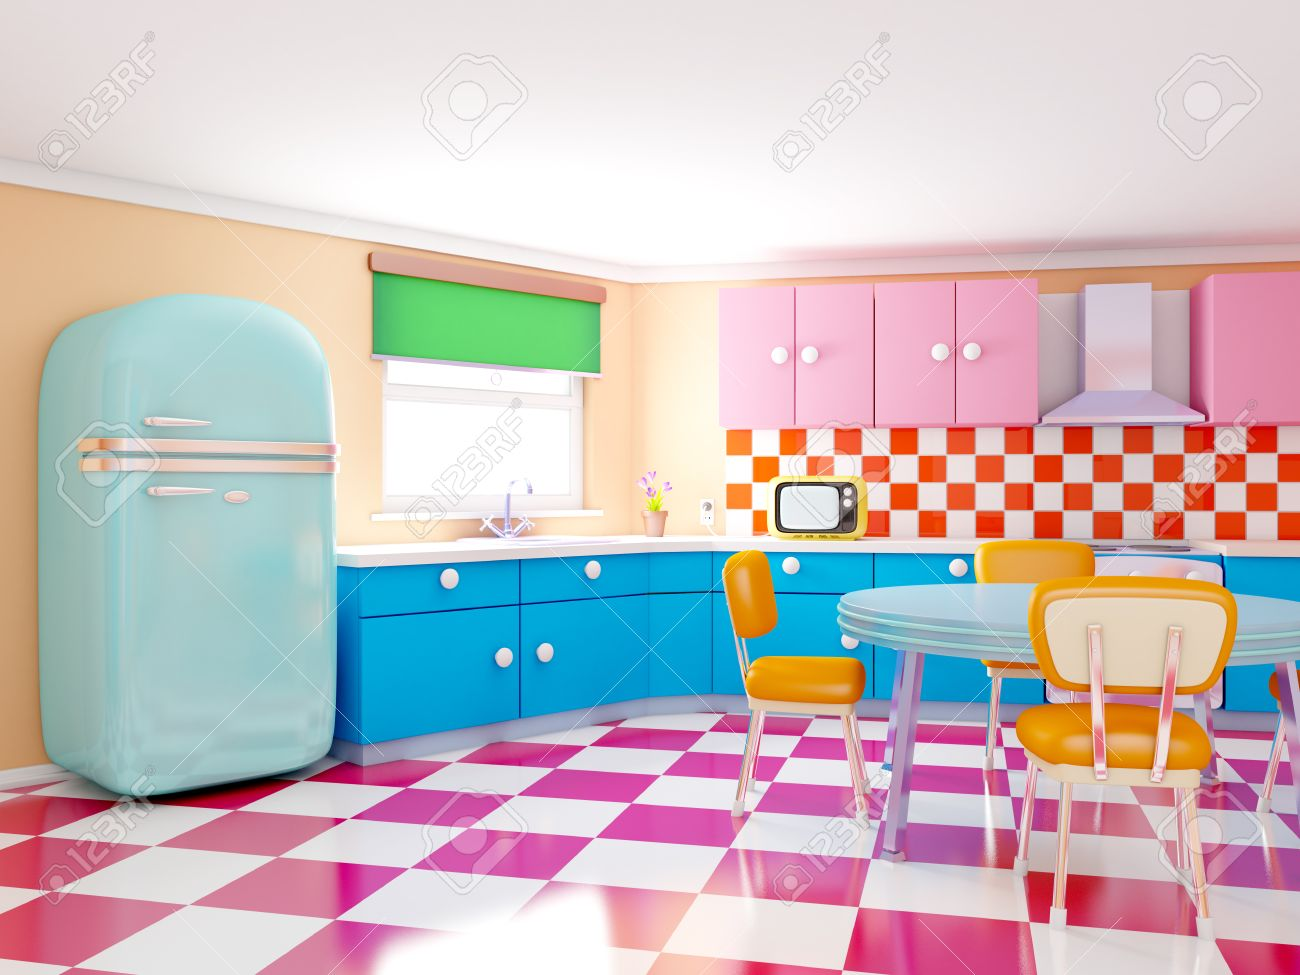 retro kitchen in cartoon style with checkered floor 3d stock